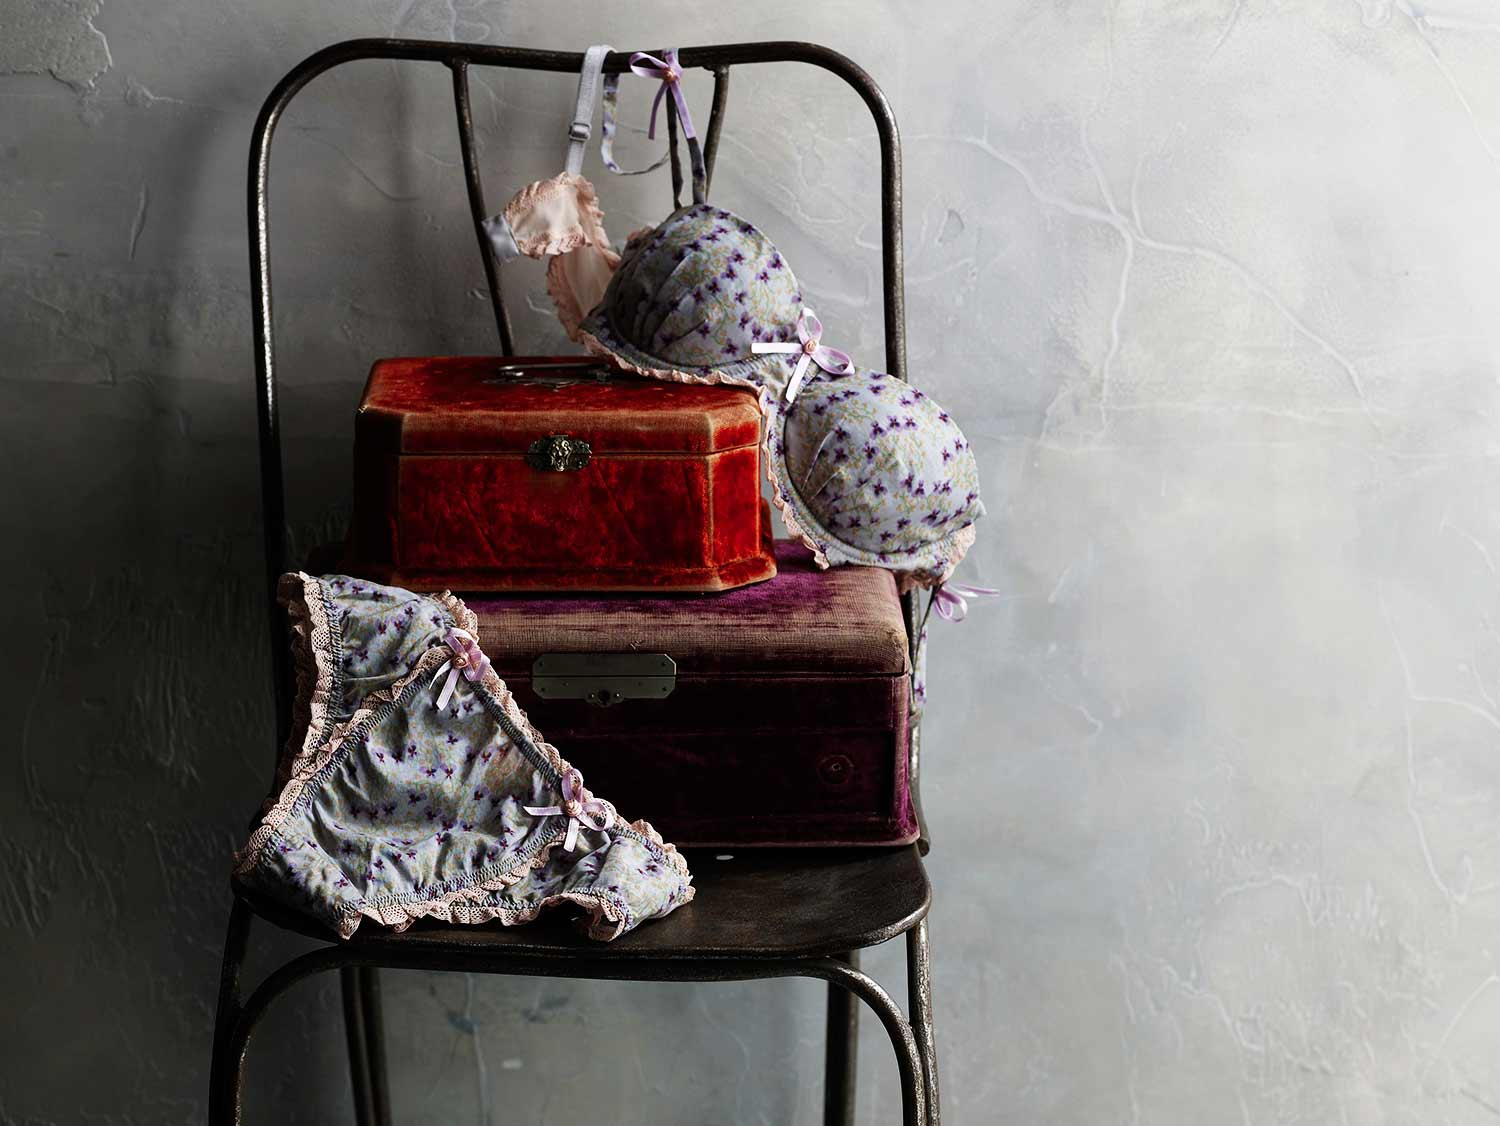 Undergarments on chair with vintage suitcases.